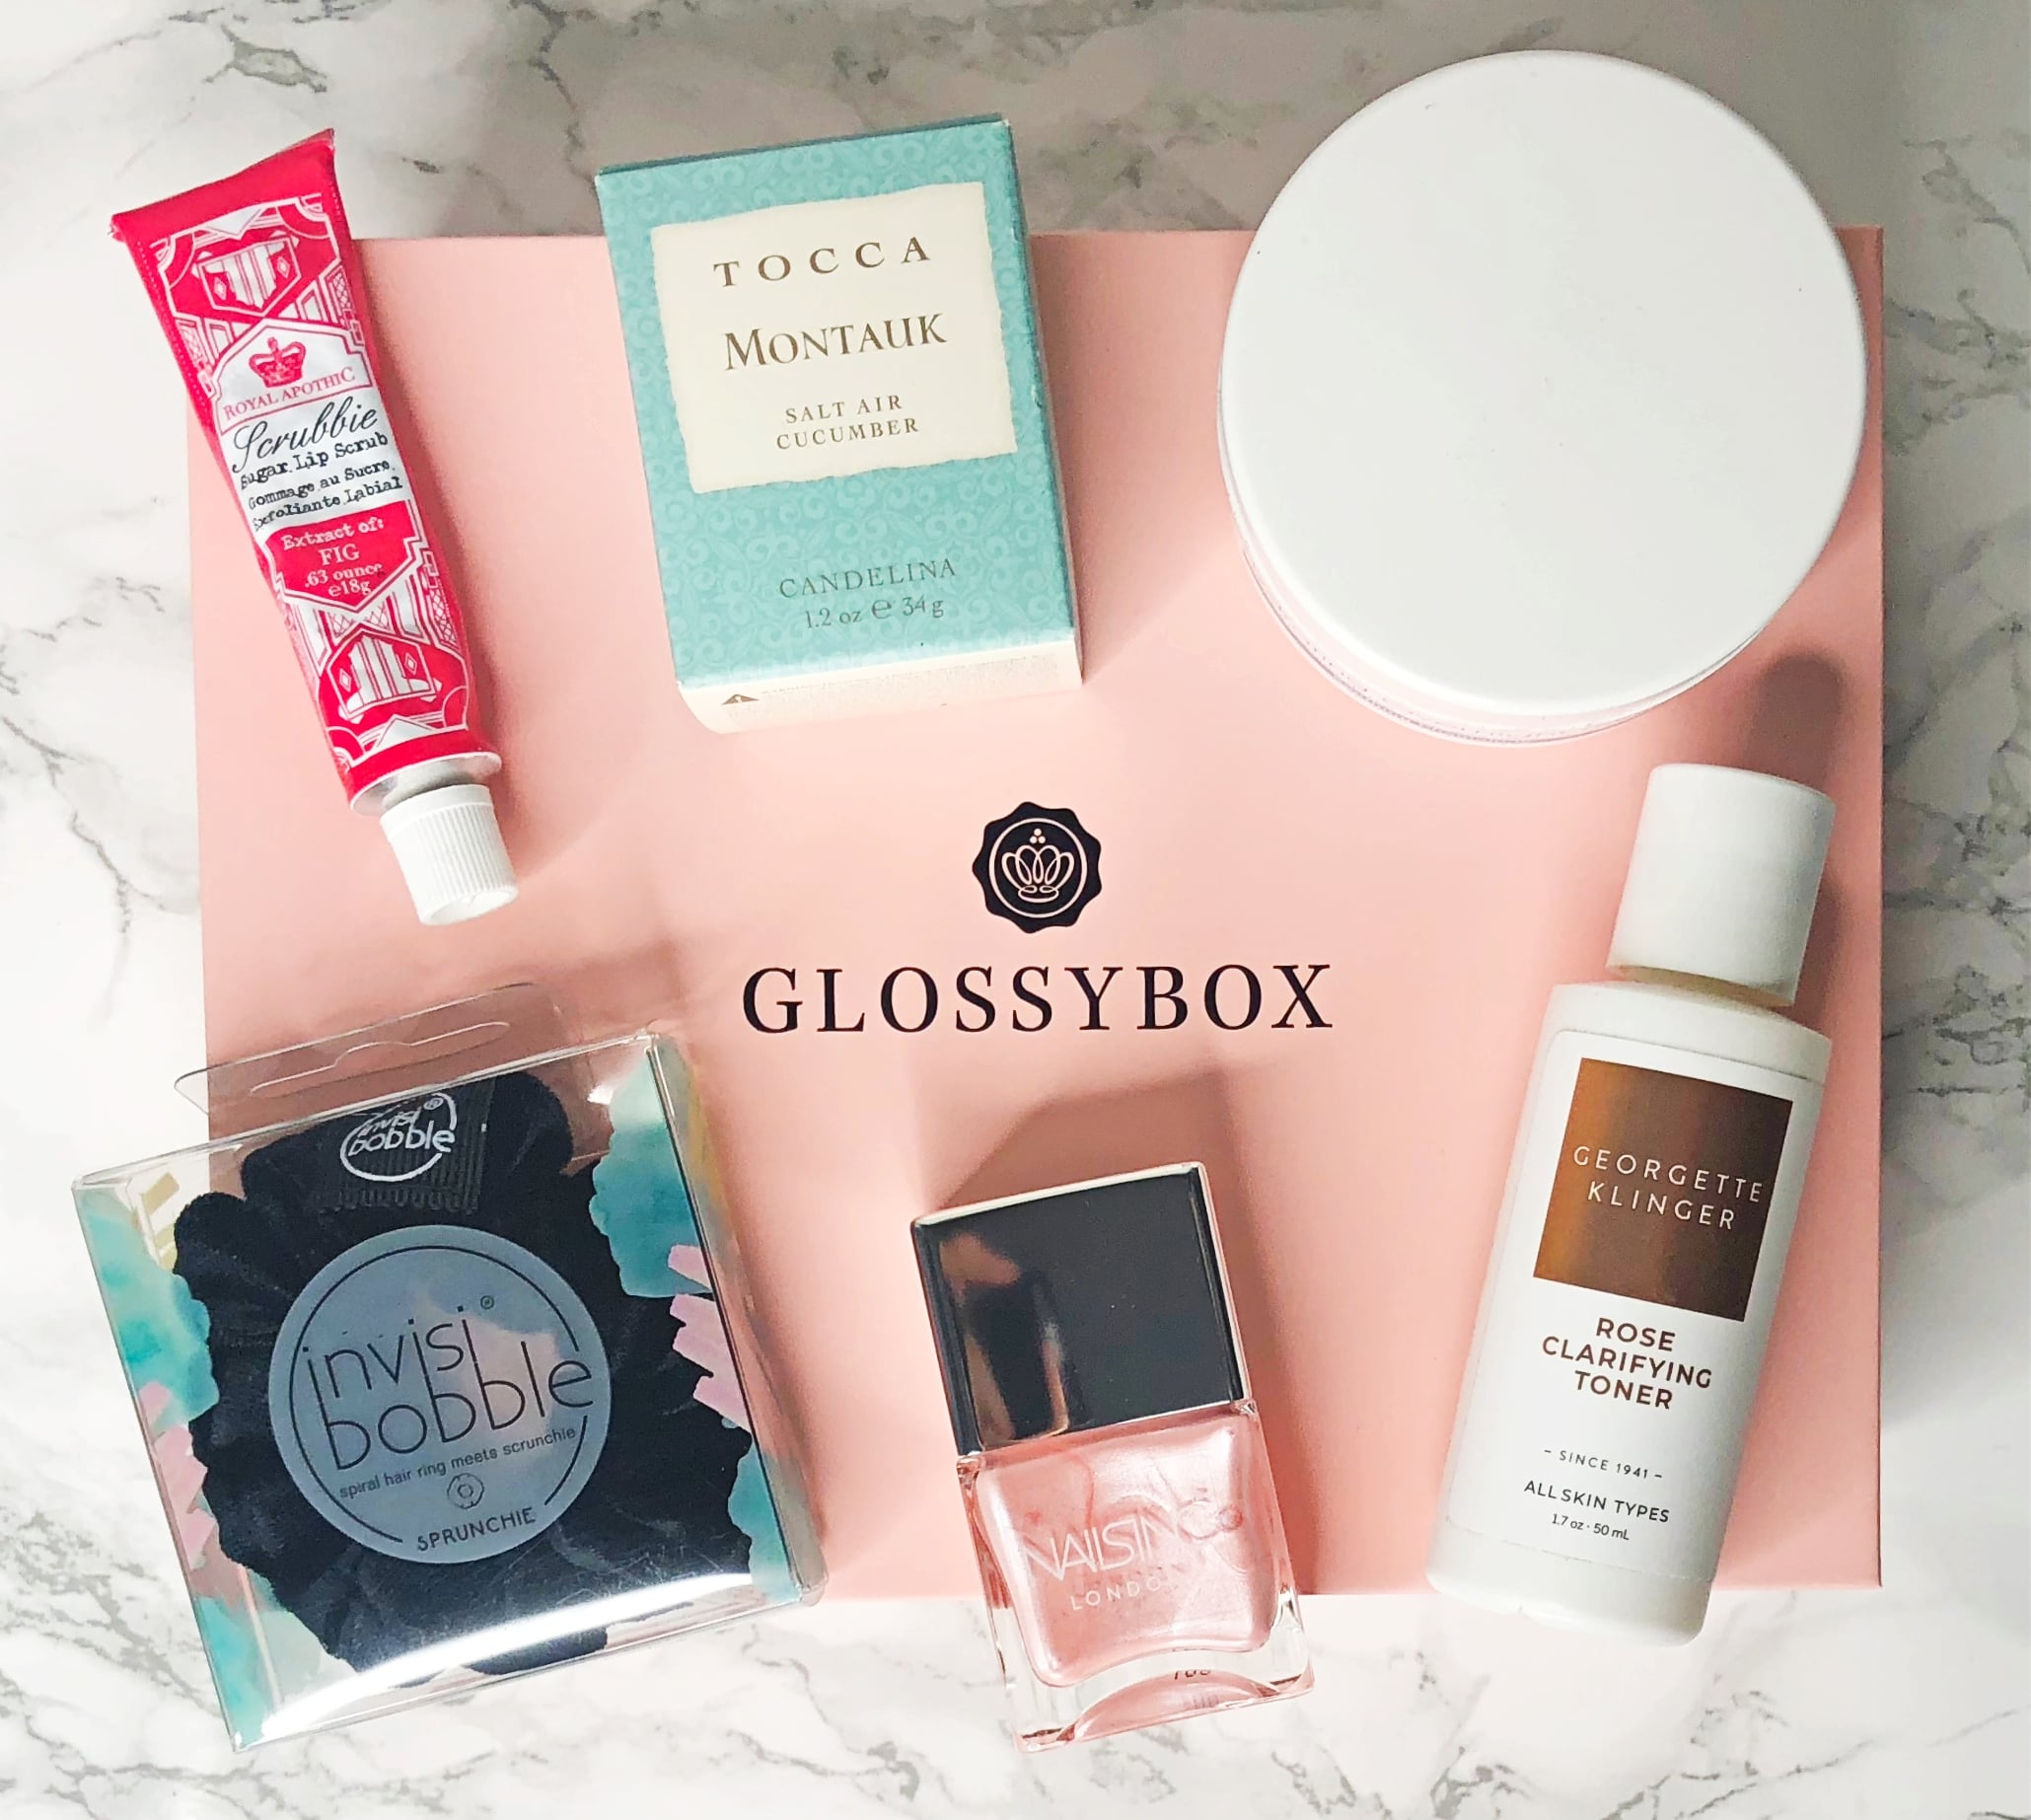 Glossybox Review - Unboxing